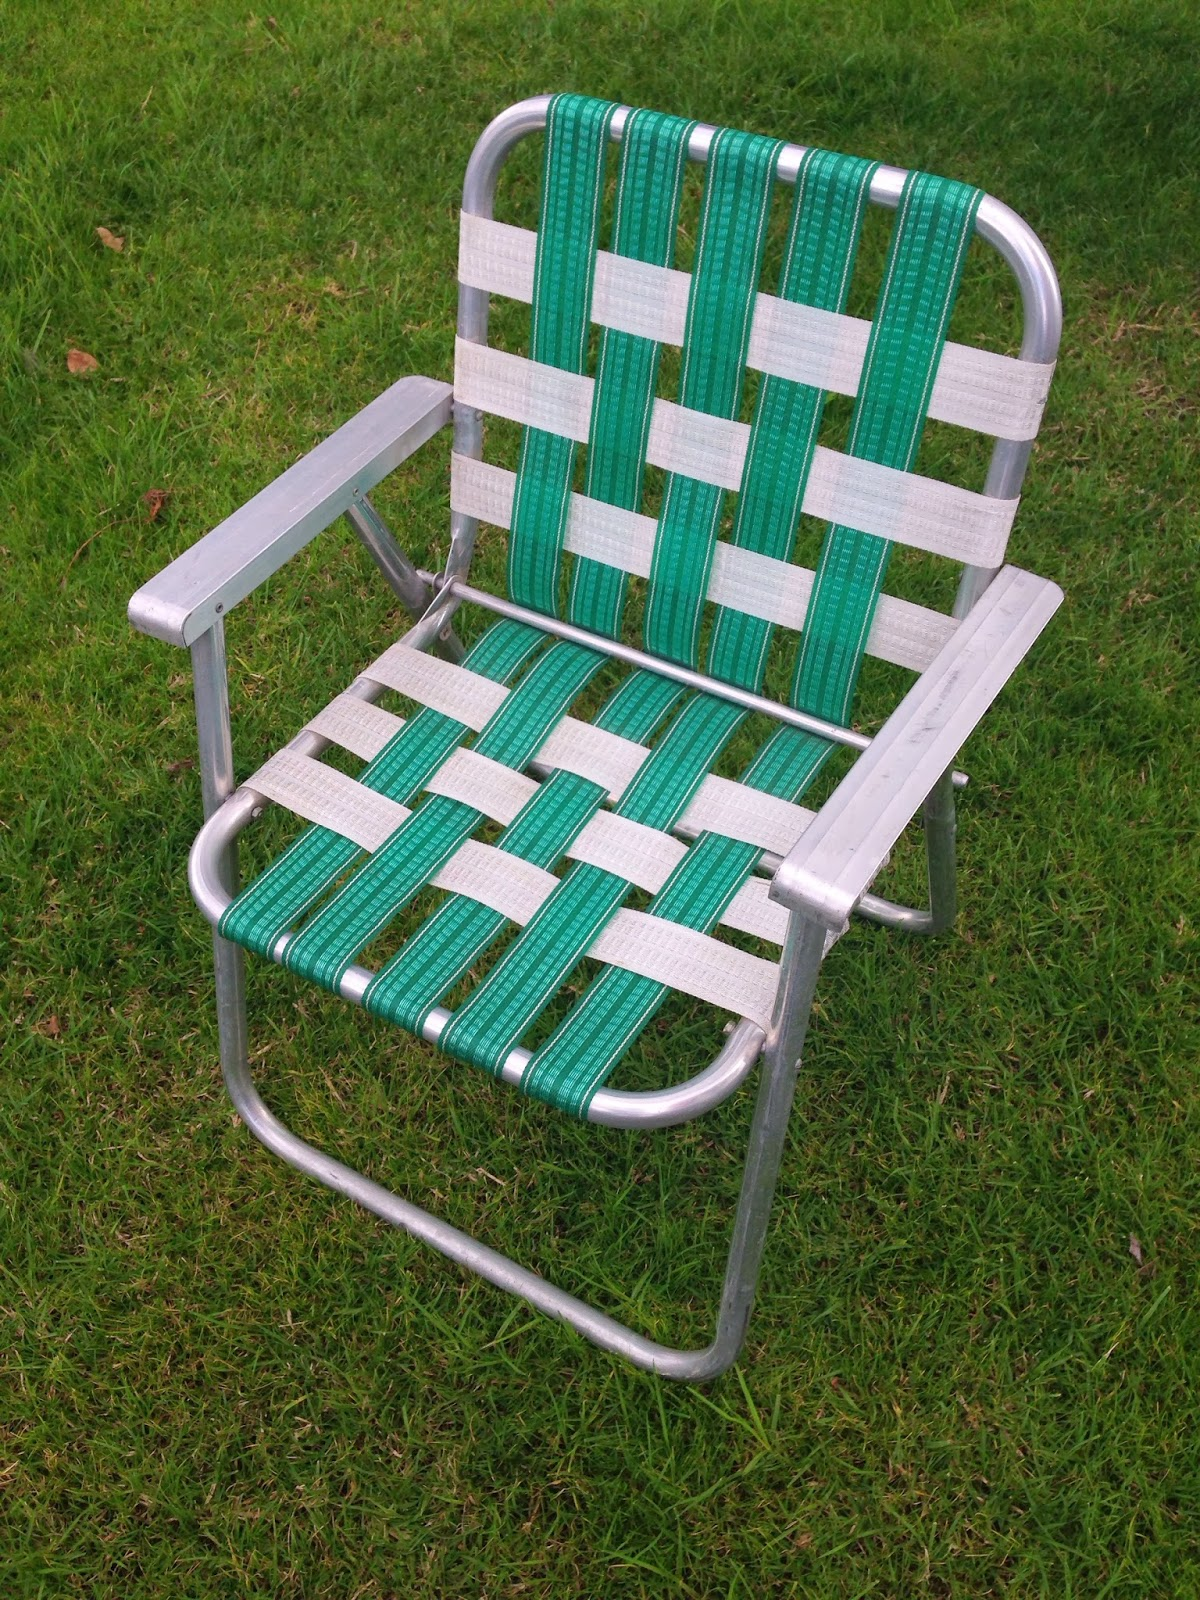 Lawn Chairs Rattan Garden Dining Uk Seatbeltblog How To Restore A 70 39s Chair Kinda